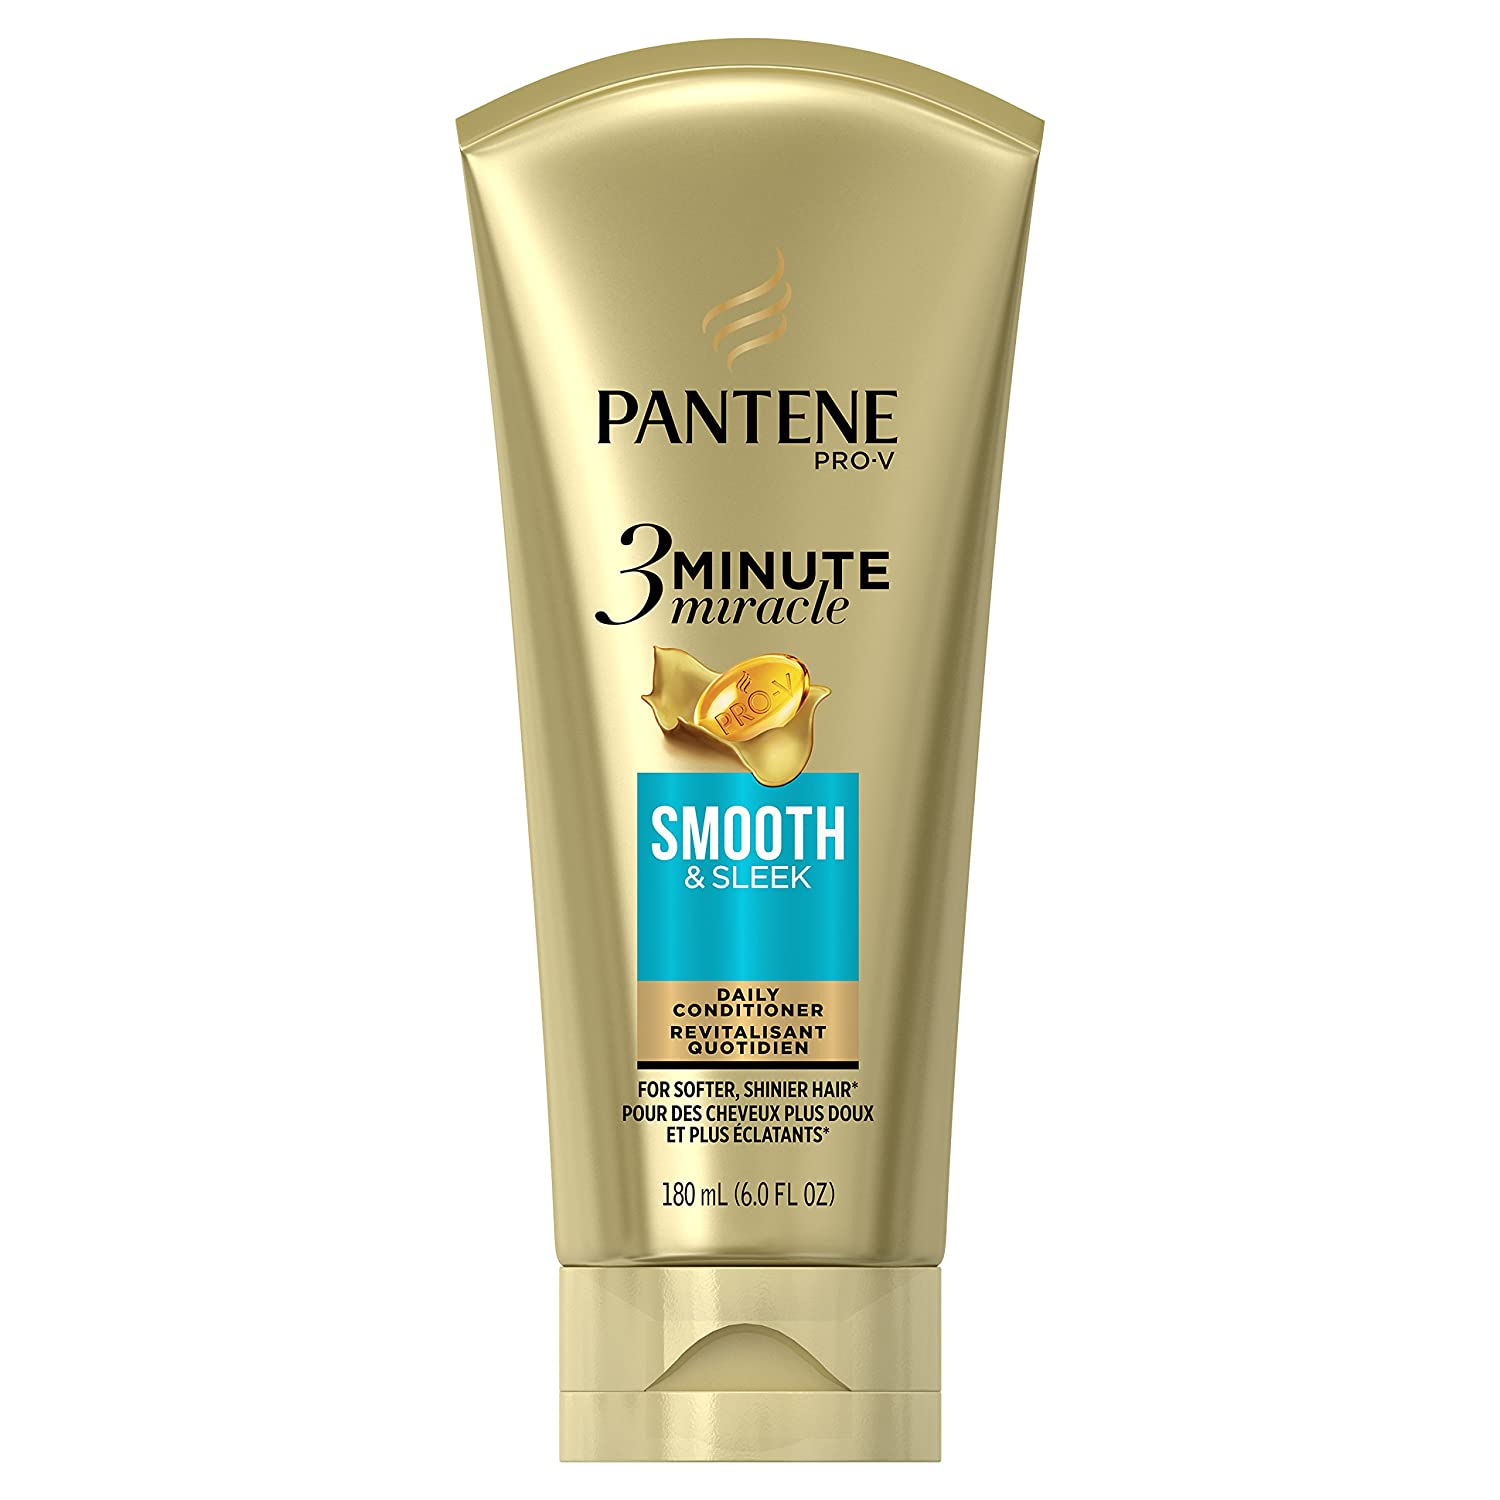 Pantene Smooth & Sleek 3 Minute Miracle Daily Conditioner, 6.0 fl oz (Packaging May Vary)